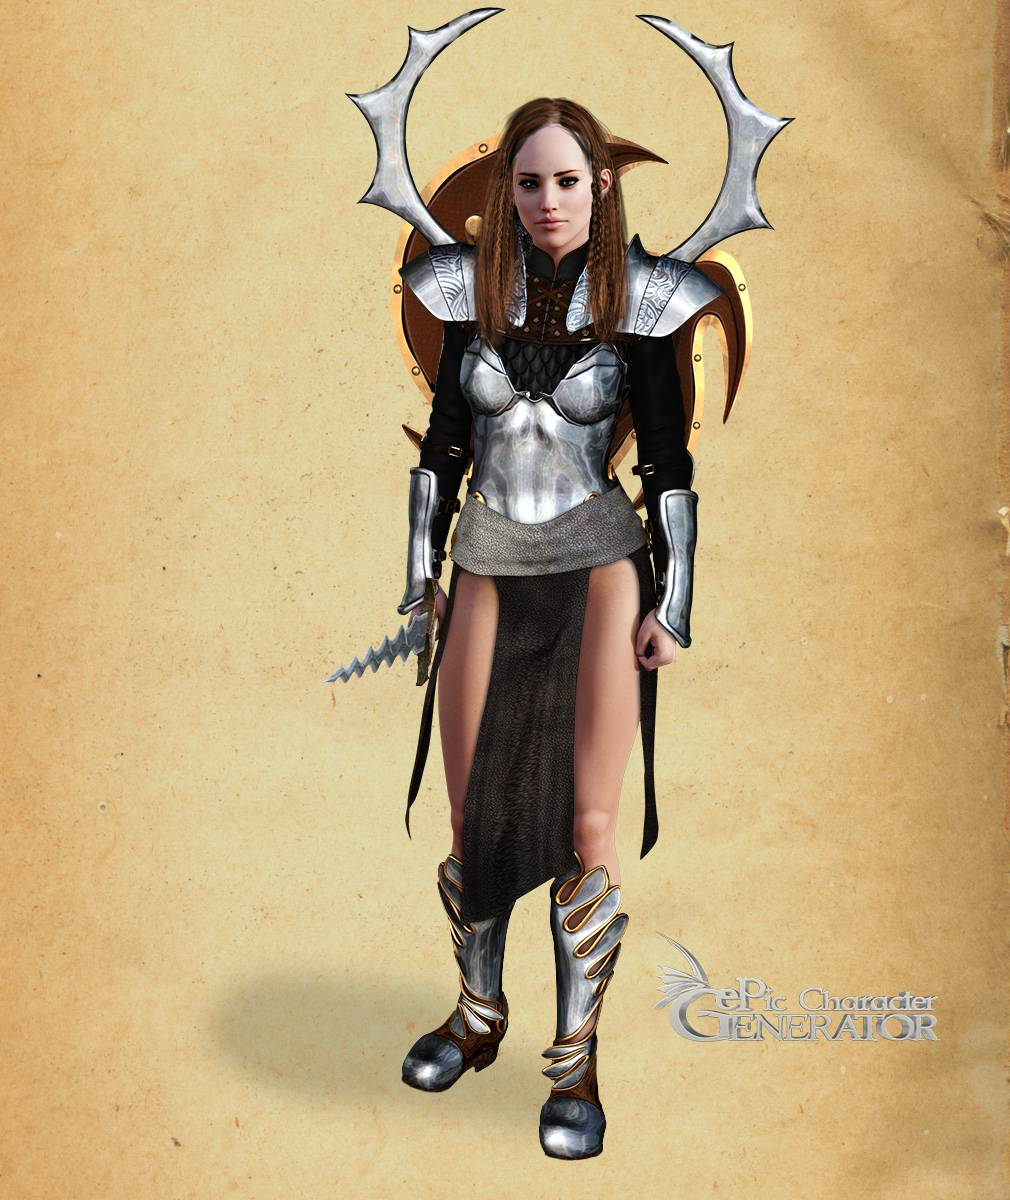 ePic Character Generator Season 2 Female Warrior Screenshot 02